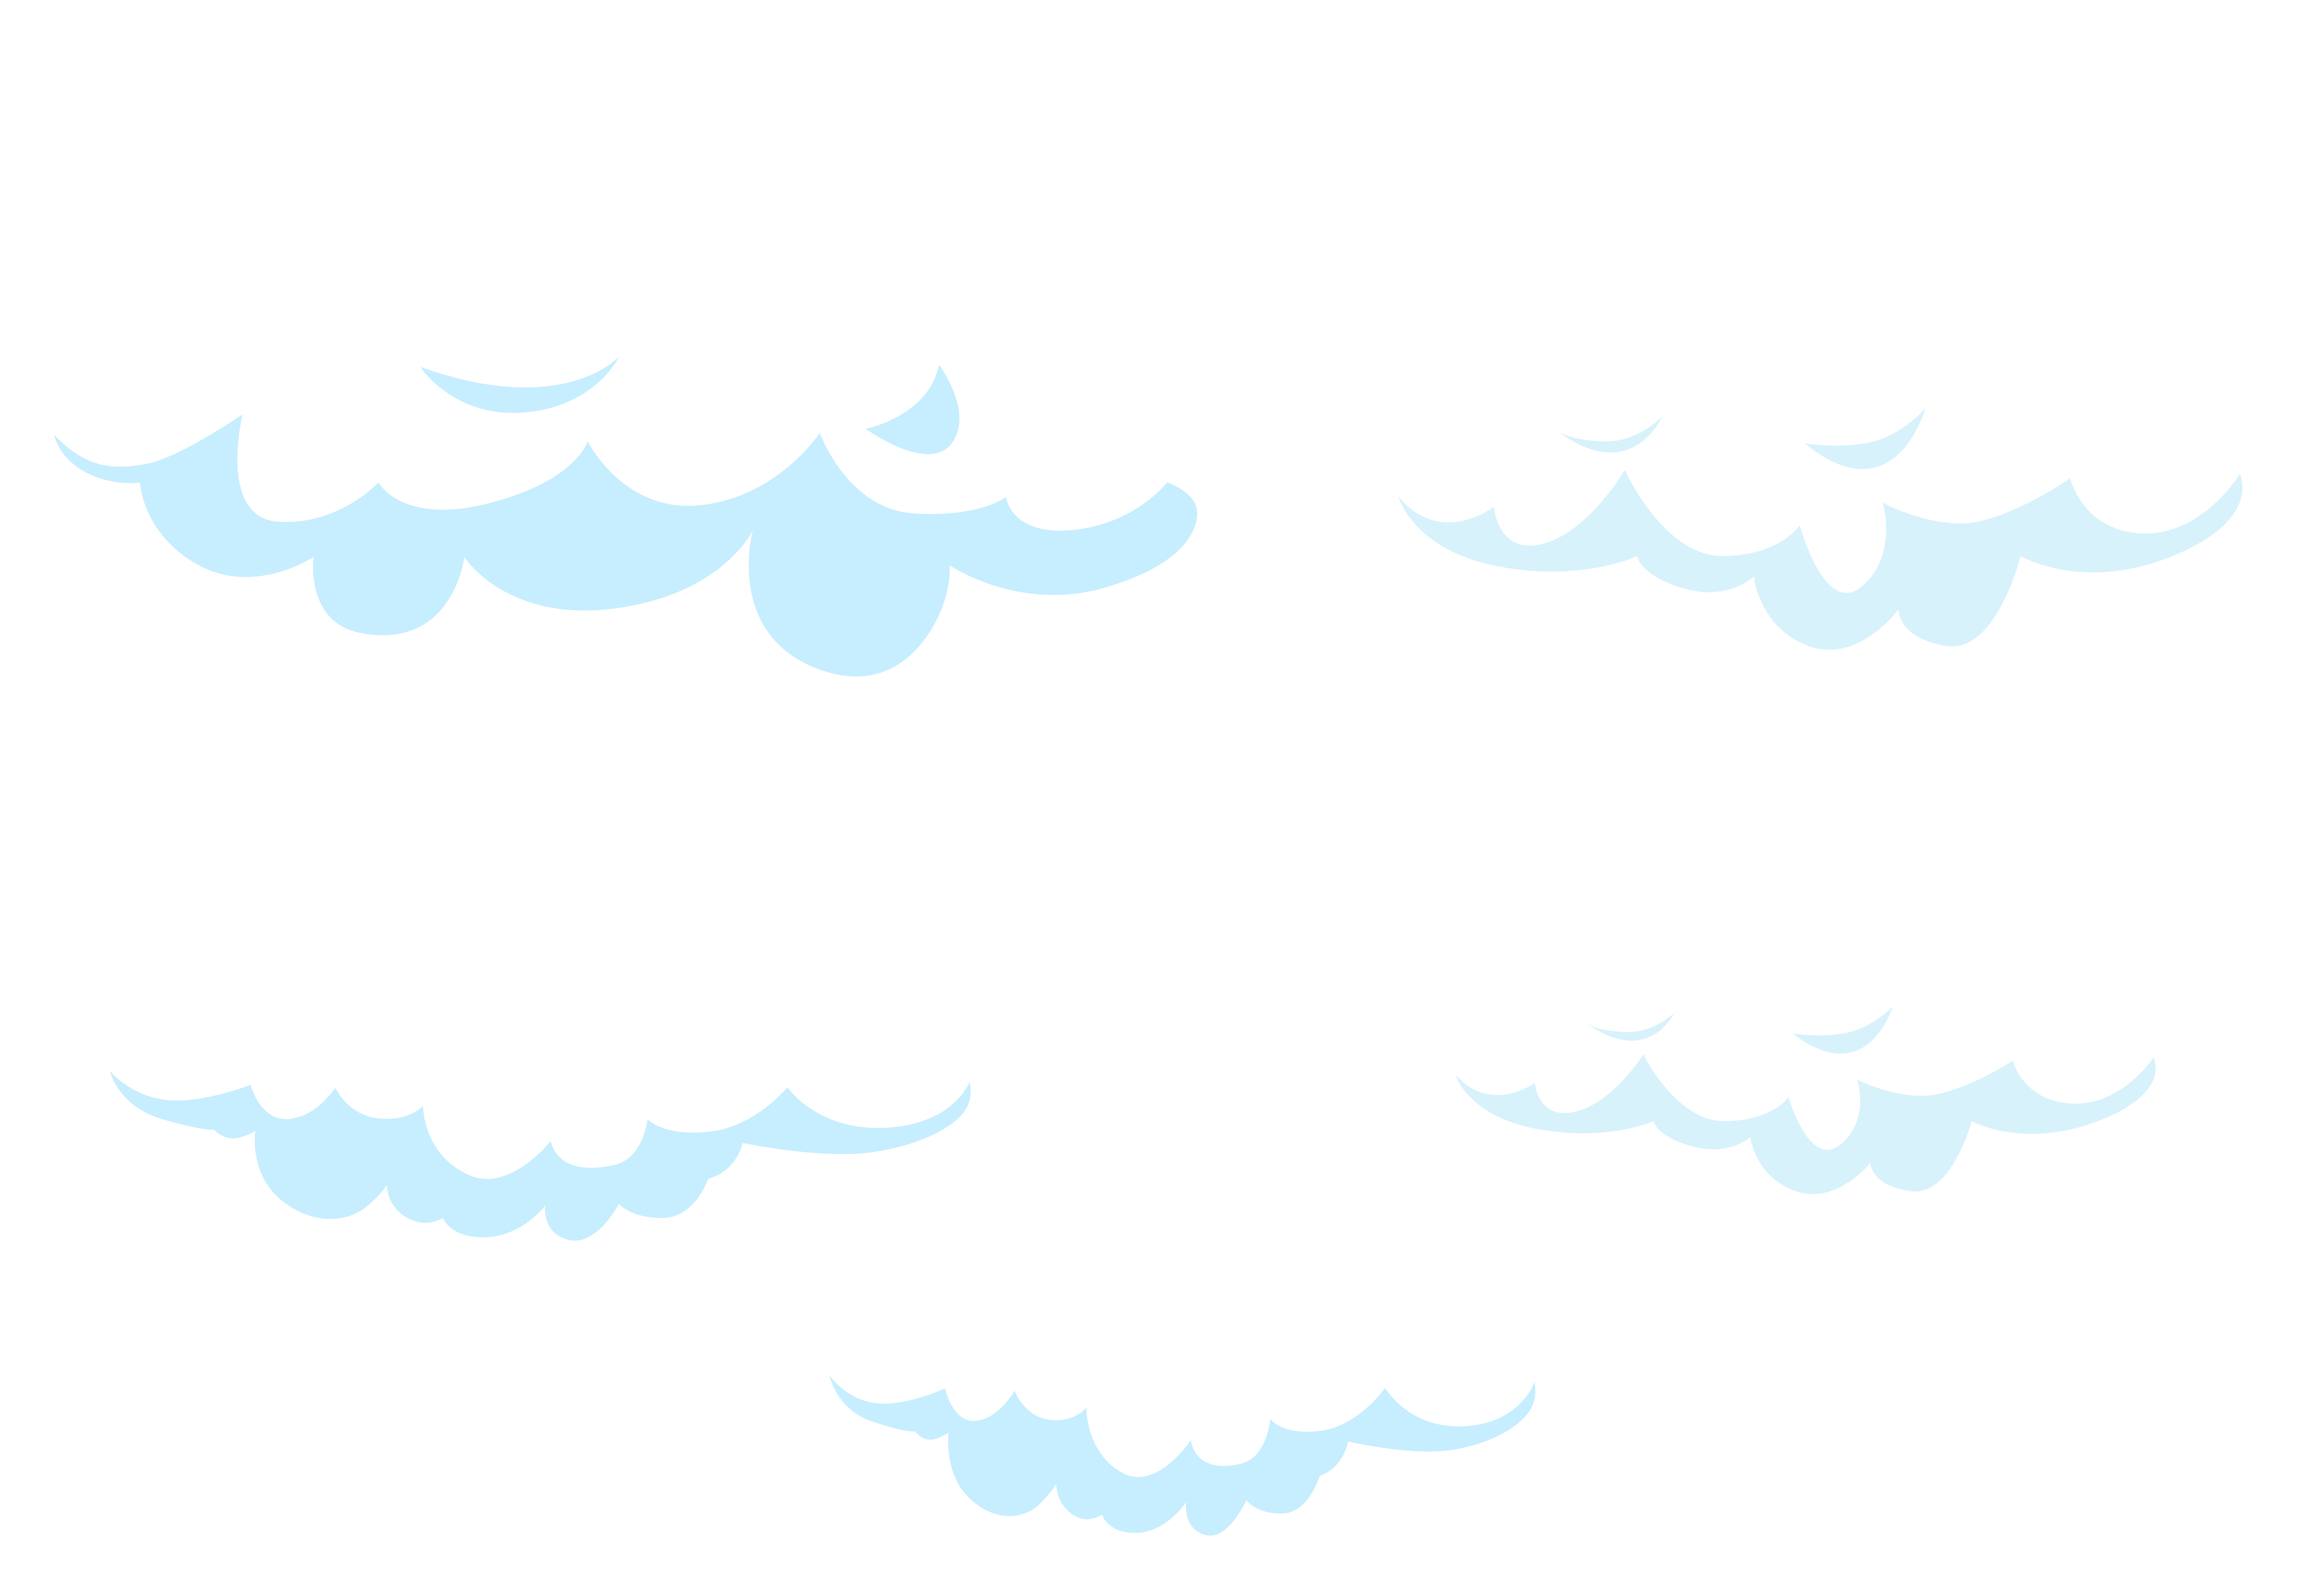 Cartoon Clouds Set Transparent Png Clip Art Image Gallery Yopriceville High Quality Images And Transparent Png Free Cartoon Clouds Clip Art Free Clip Art